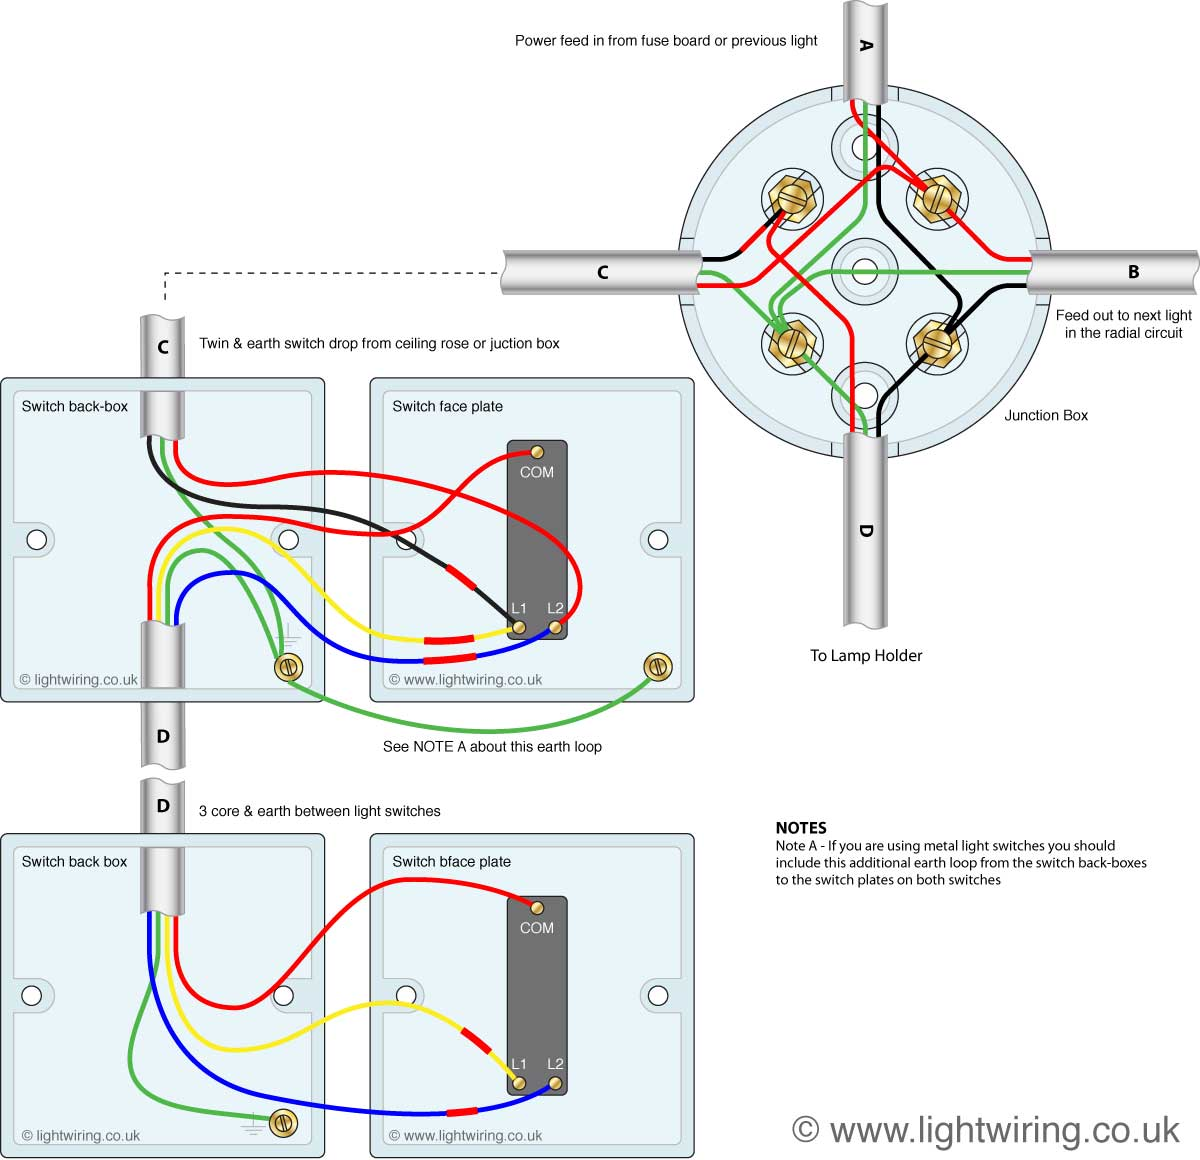 3 way switching from junction box 3 core and earth wiring diagram earth core chart \u2022 wiring diagrams  at readyjetset.co